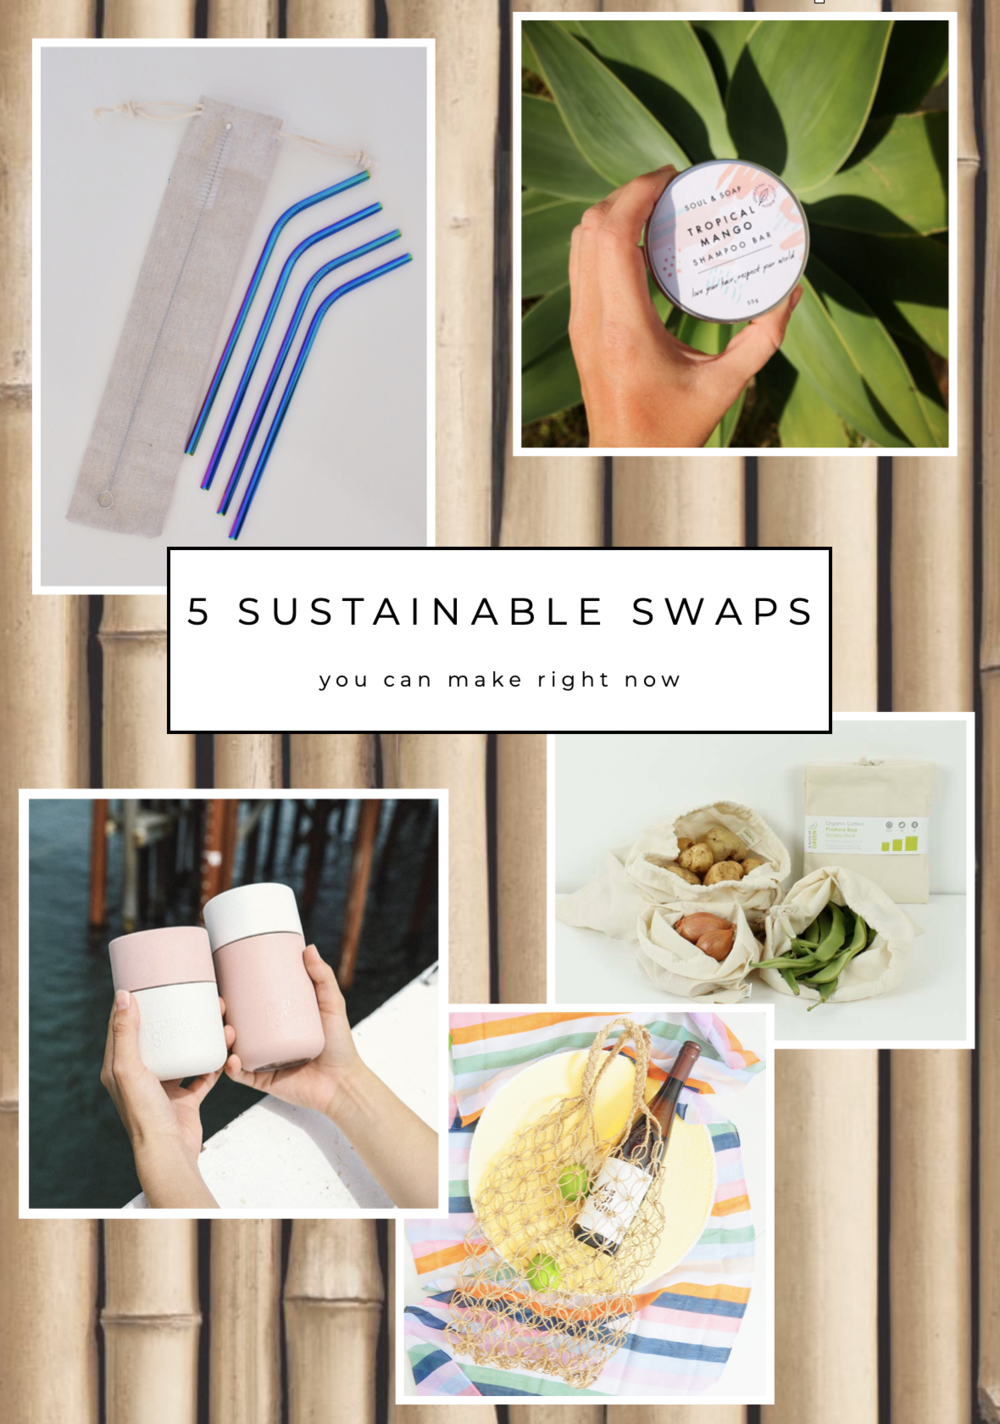 5 Sustainable swaps you can make right now   Soi 55